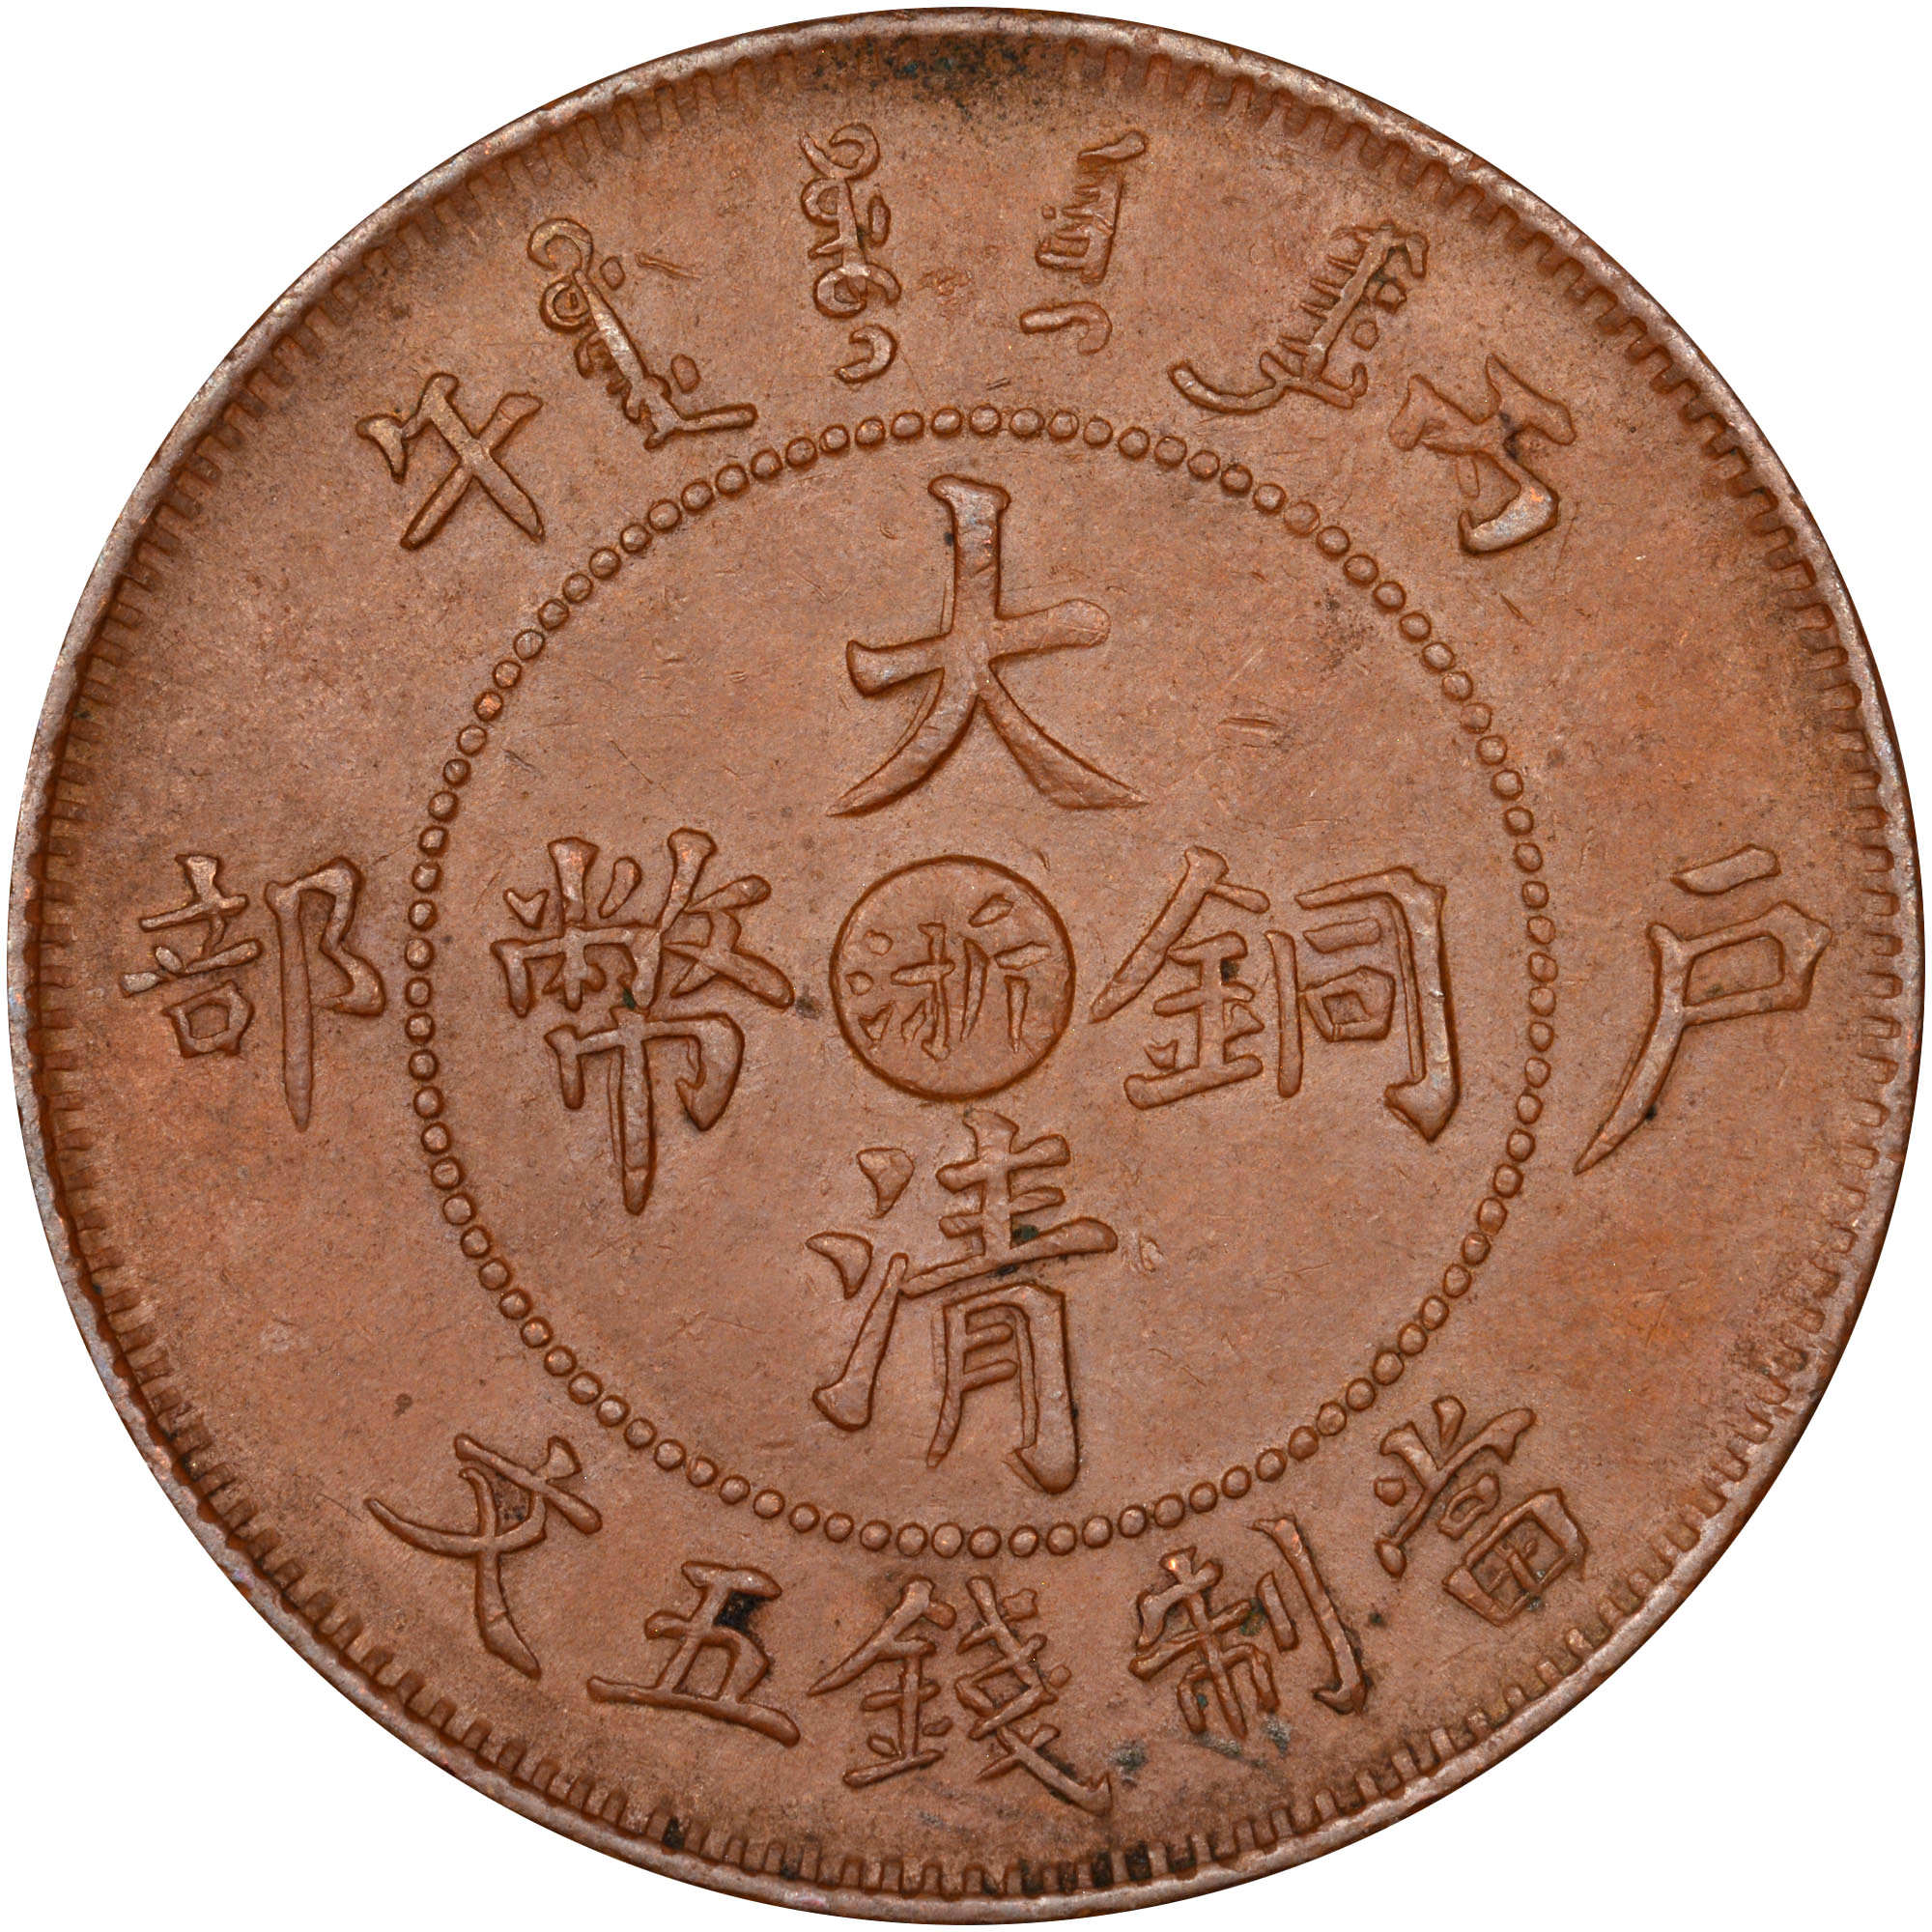 1906 CHINA CHEKIANG PROVINCE 5 Cash obverse